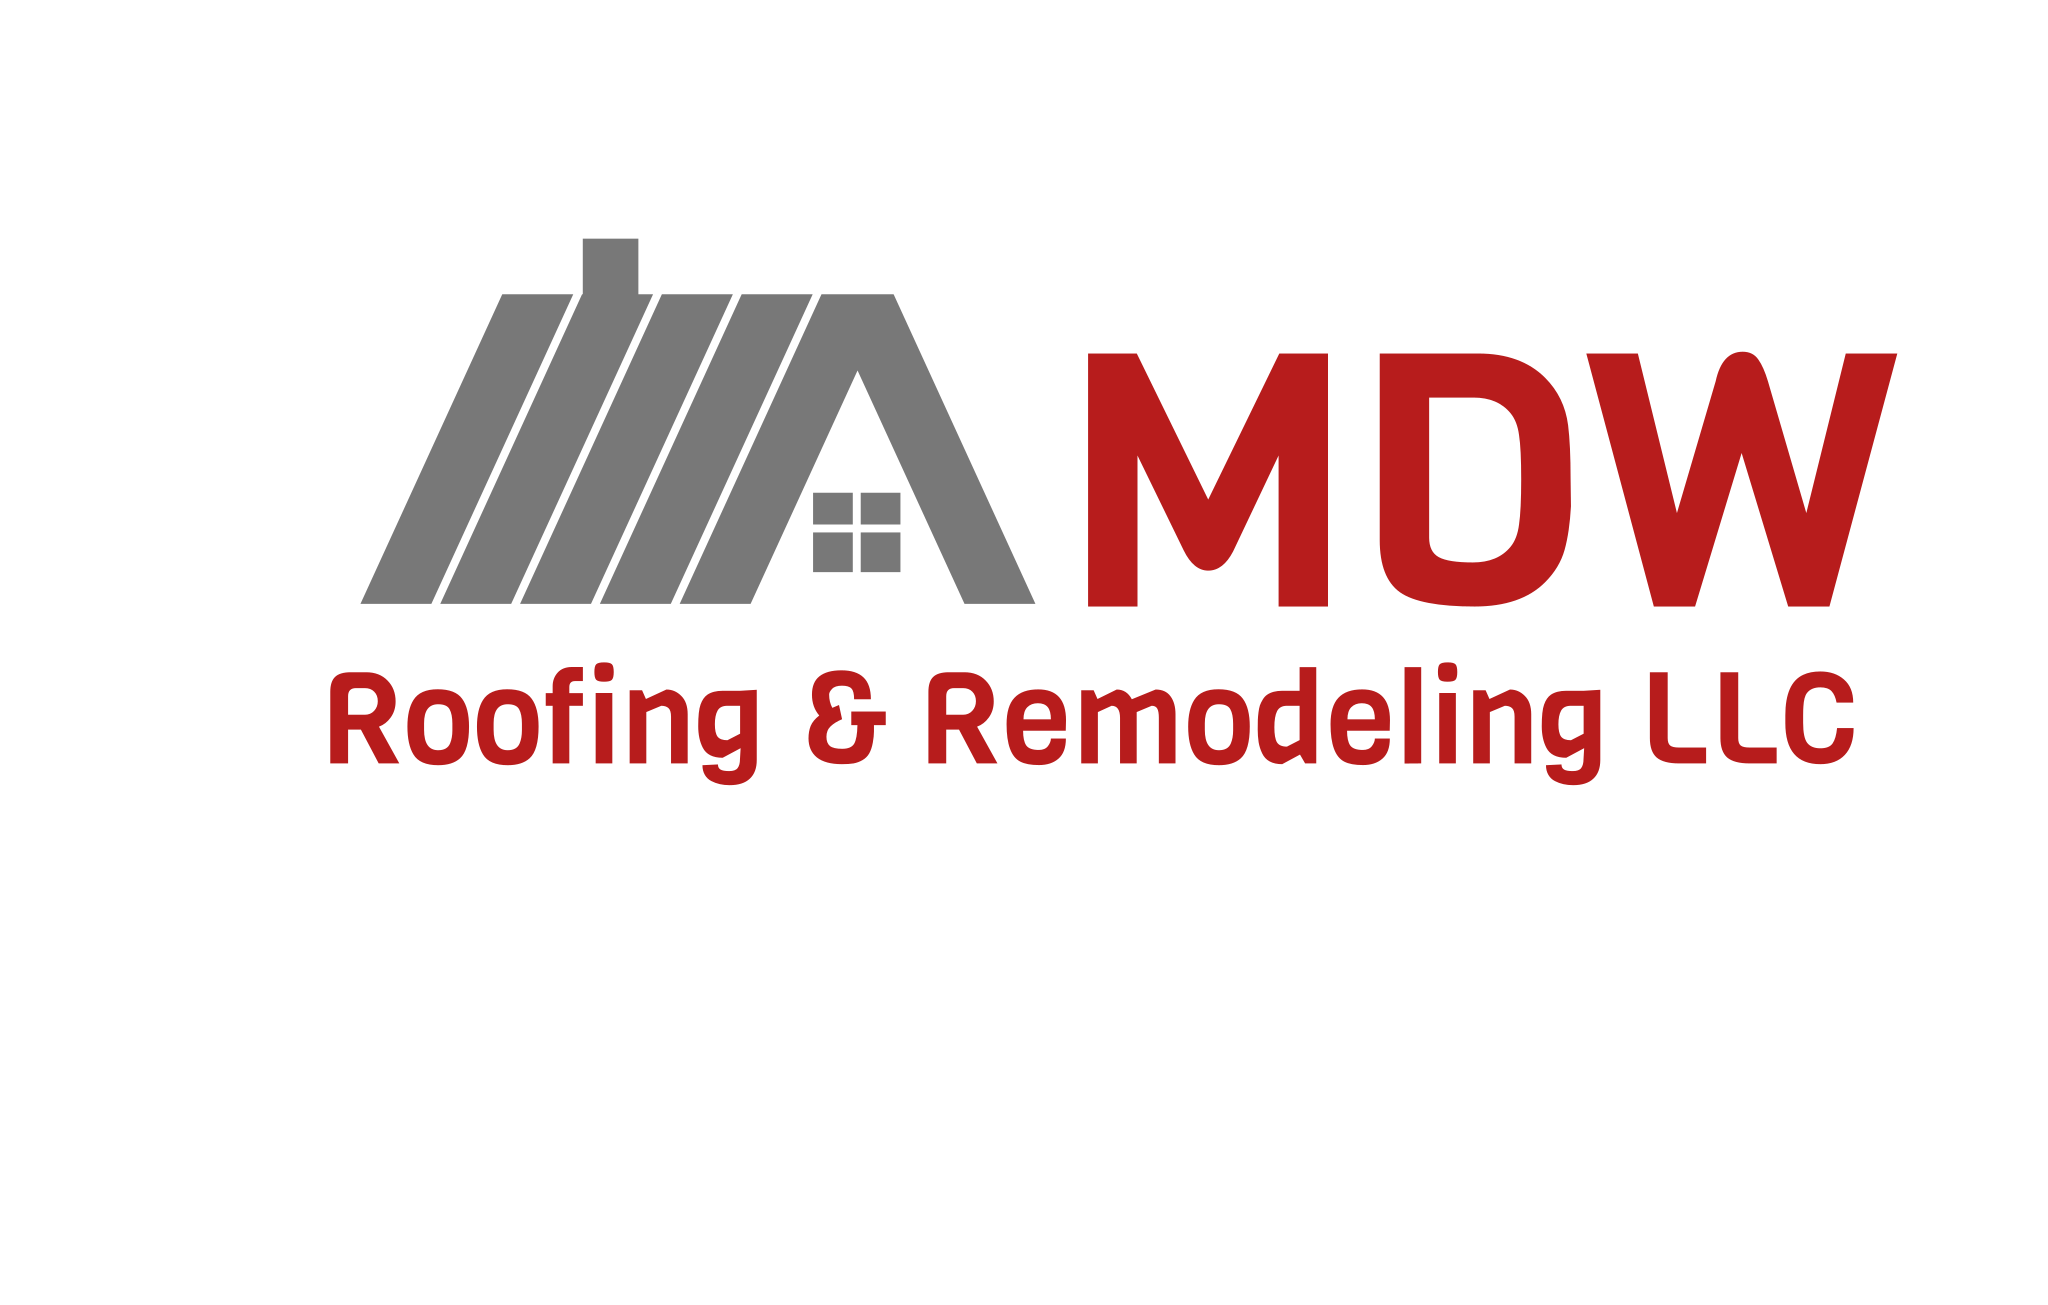 MDW Roofing and Remodeling LLC logo